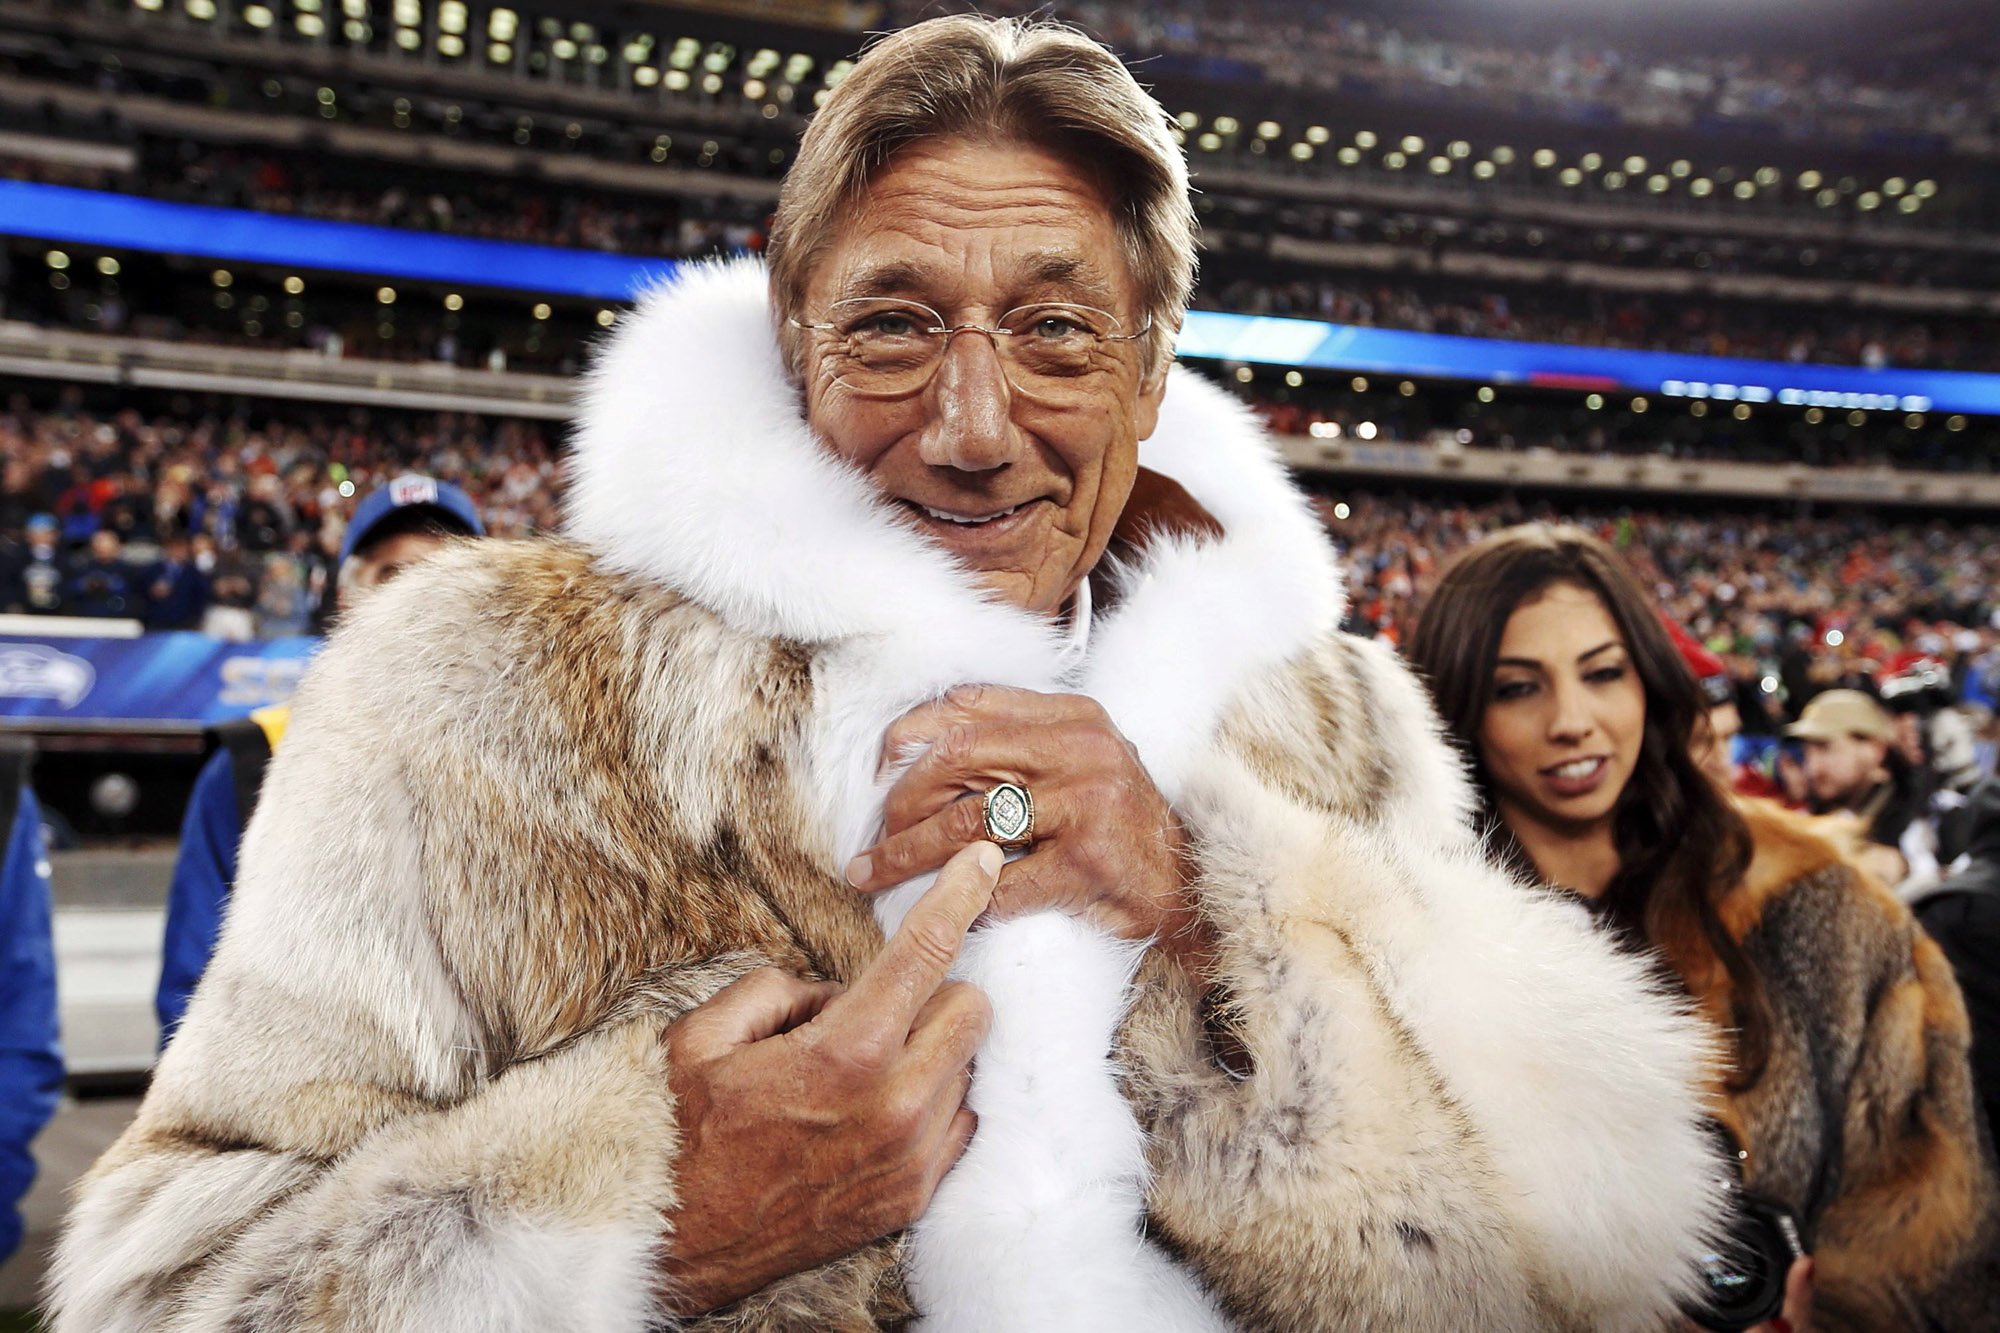 Former New York Jets quarterback Joe Namath points to his championship ring before the Seattle Seahawks play the Denver Broncos in the NFL Super Bowl XLVIII football game in East Rutherford, New Jersey, February 2, 2014. REUTERS/Carlo Allegri (UNITED STATES - Tags: SPORT FOOTBALL TPX IMAGES OF THE DAY)